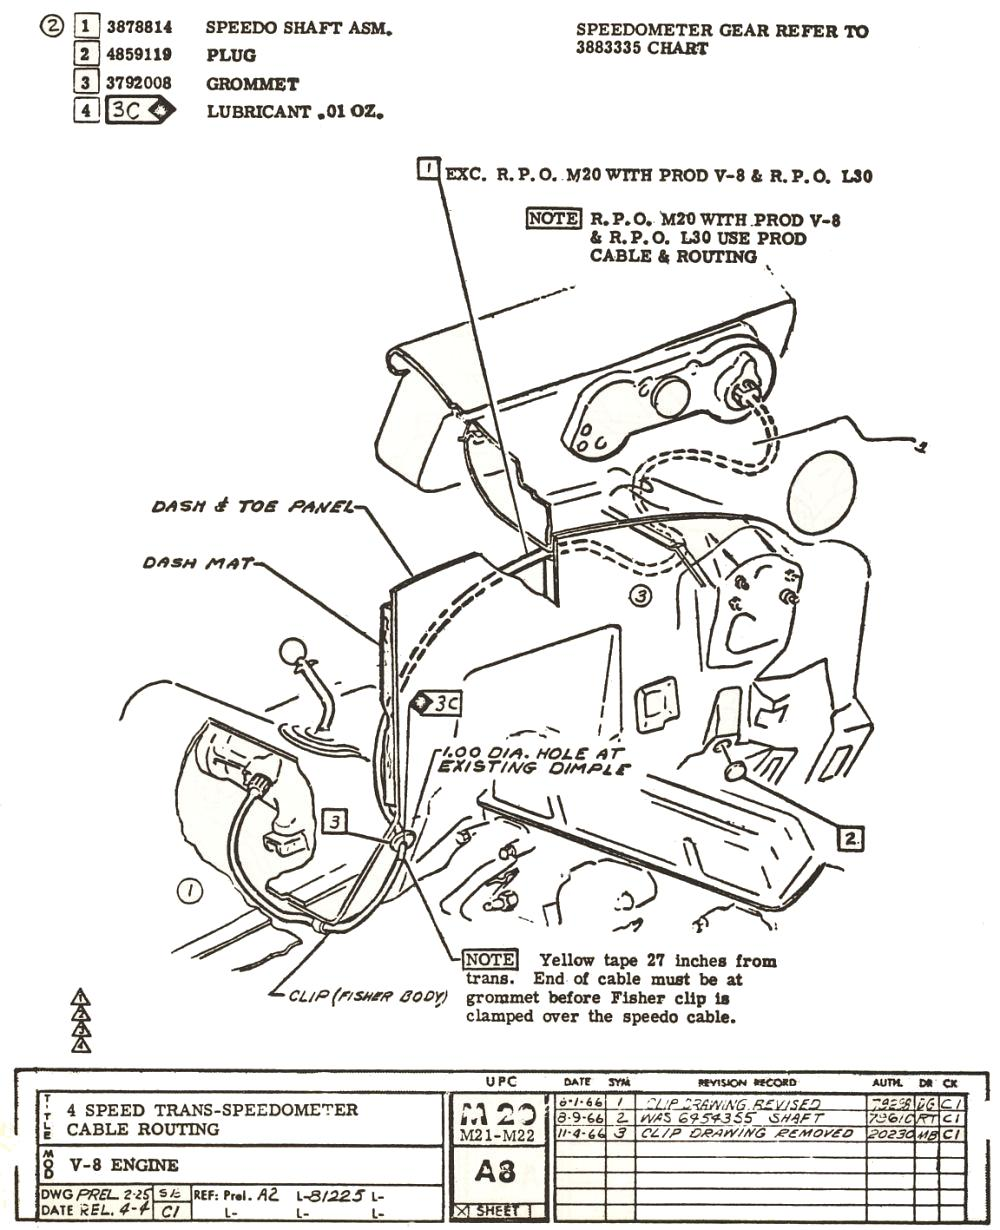 70 Chevelle Ss Wiring Diagram Simple Guide About 1967 Muncie Speedometer Cable Length And Routing 1970 Cowl Induction